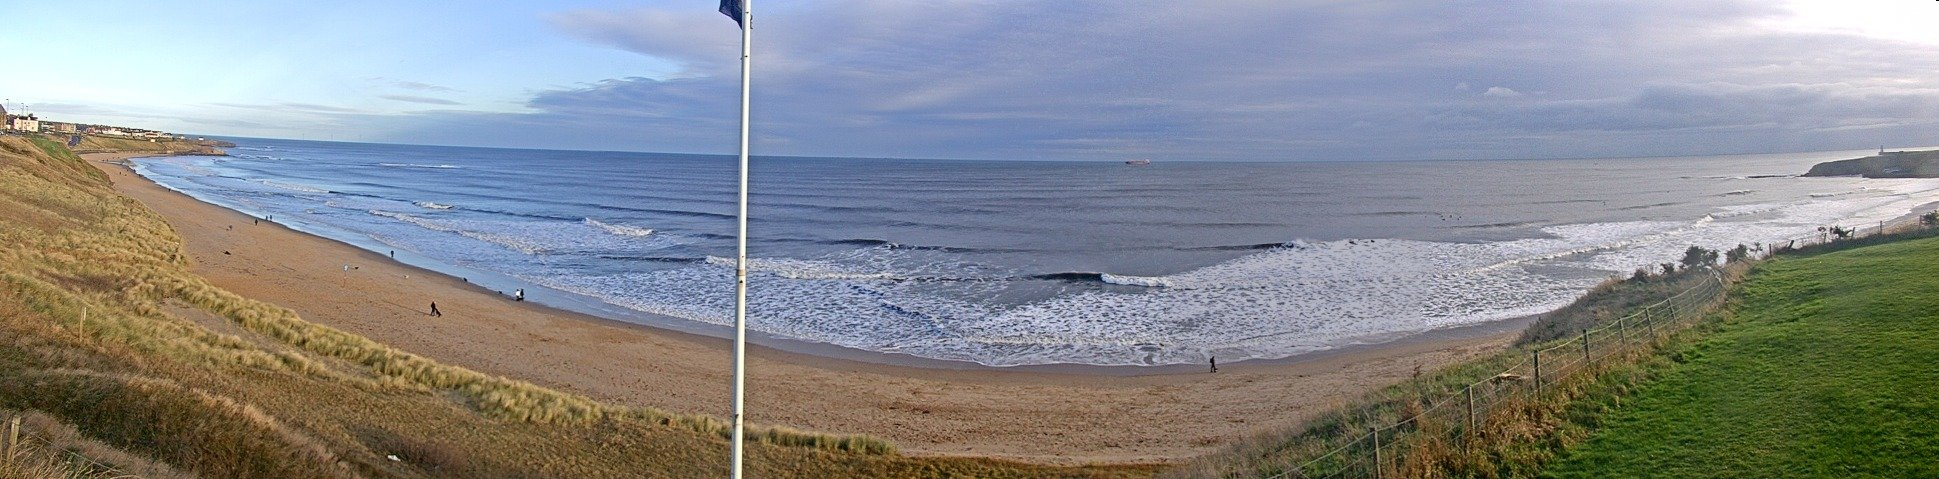 Latest webcam still for Tynemouth - Longsands